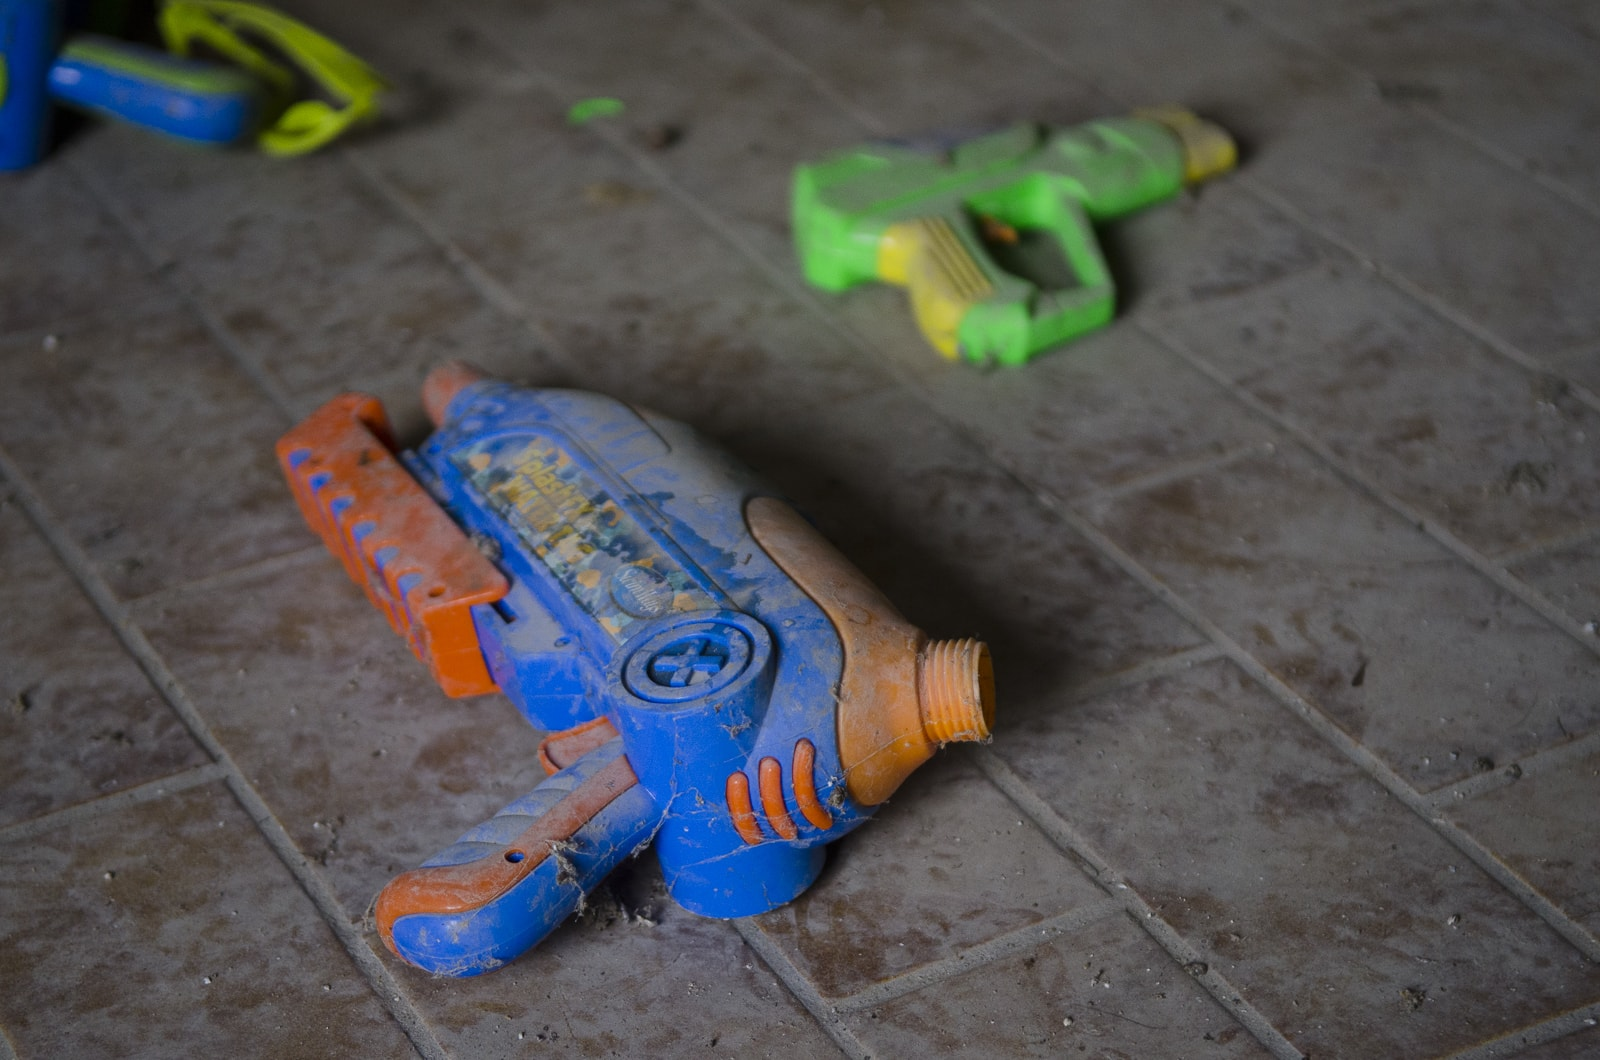 A dusty toy gun on the ground in an abandoned house